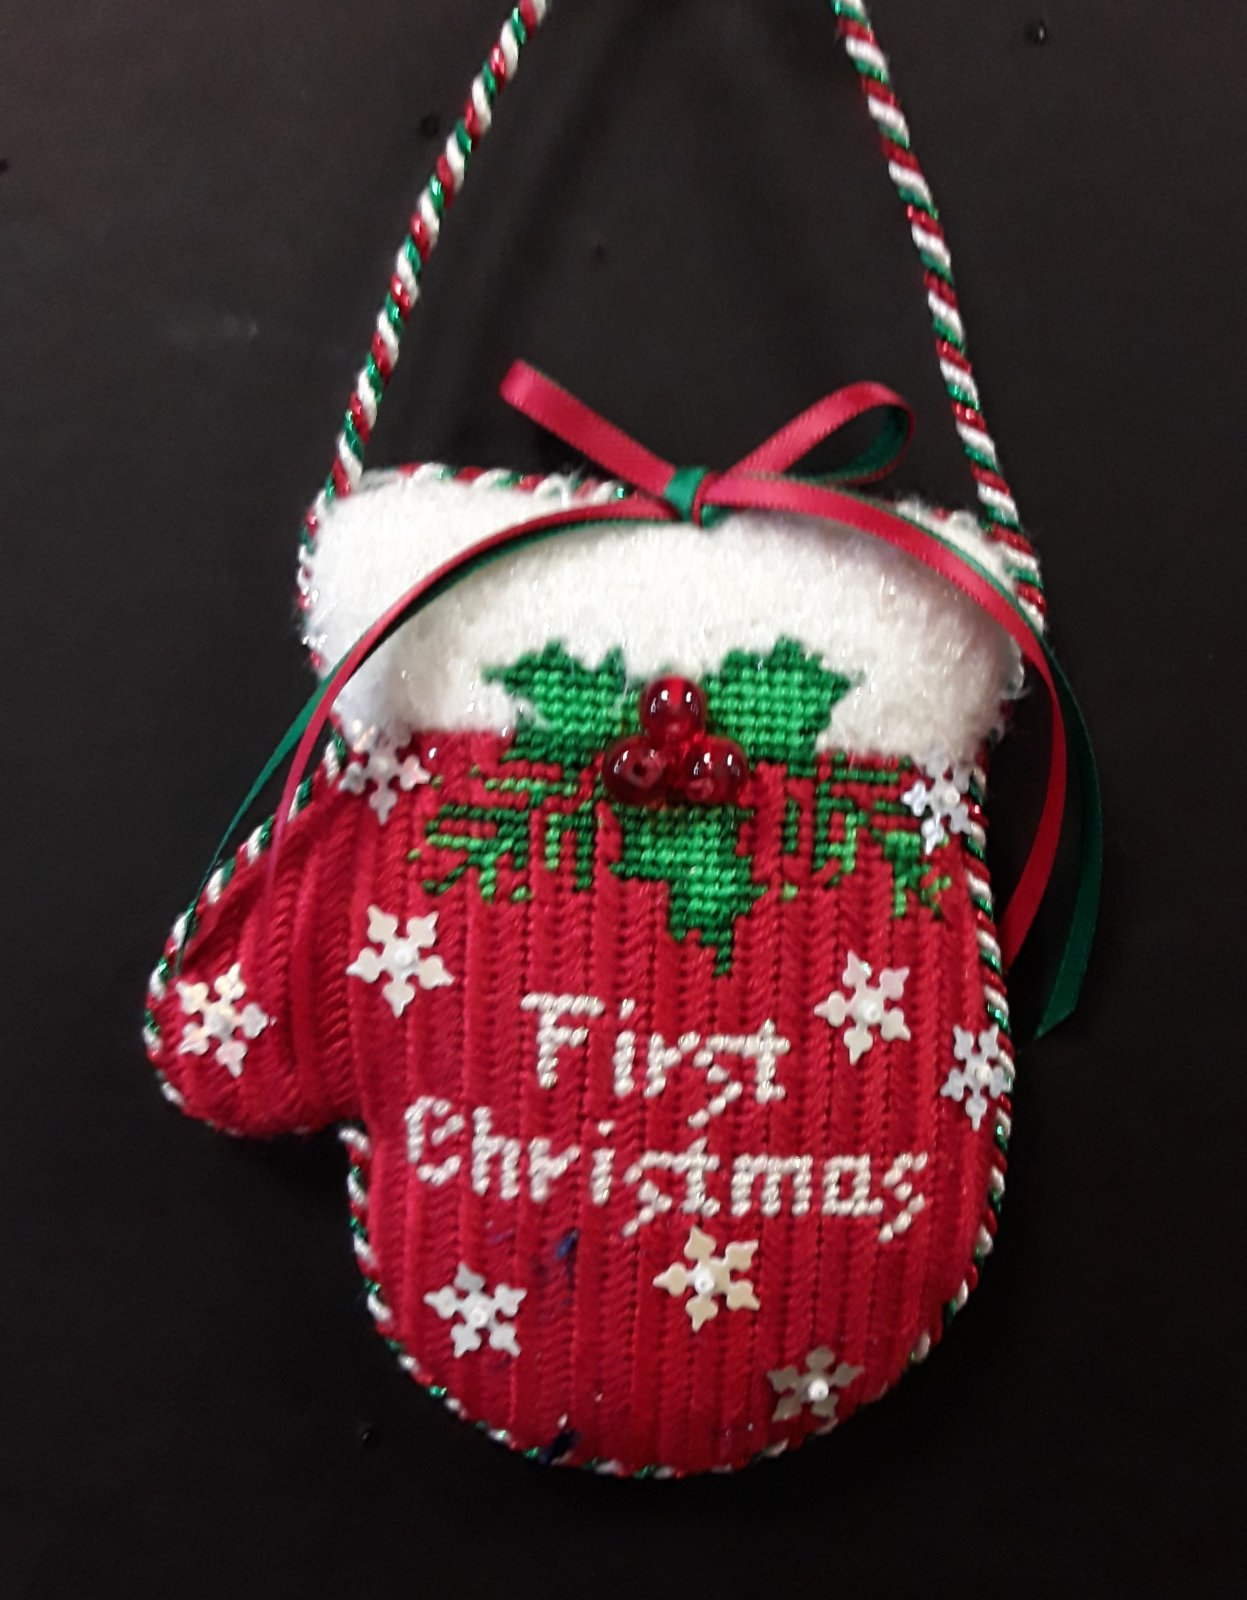 First Christmas Mitten - Stitched by Deby T.